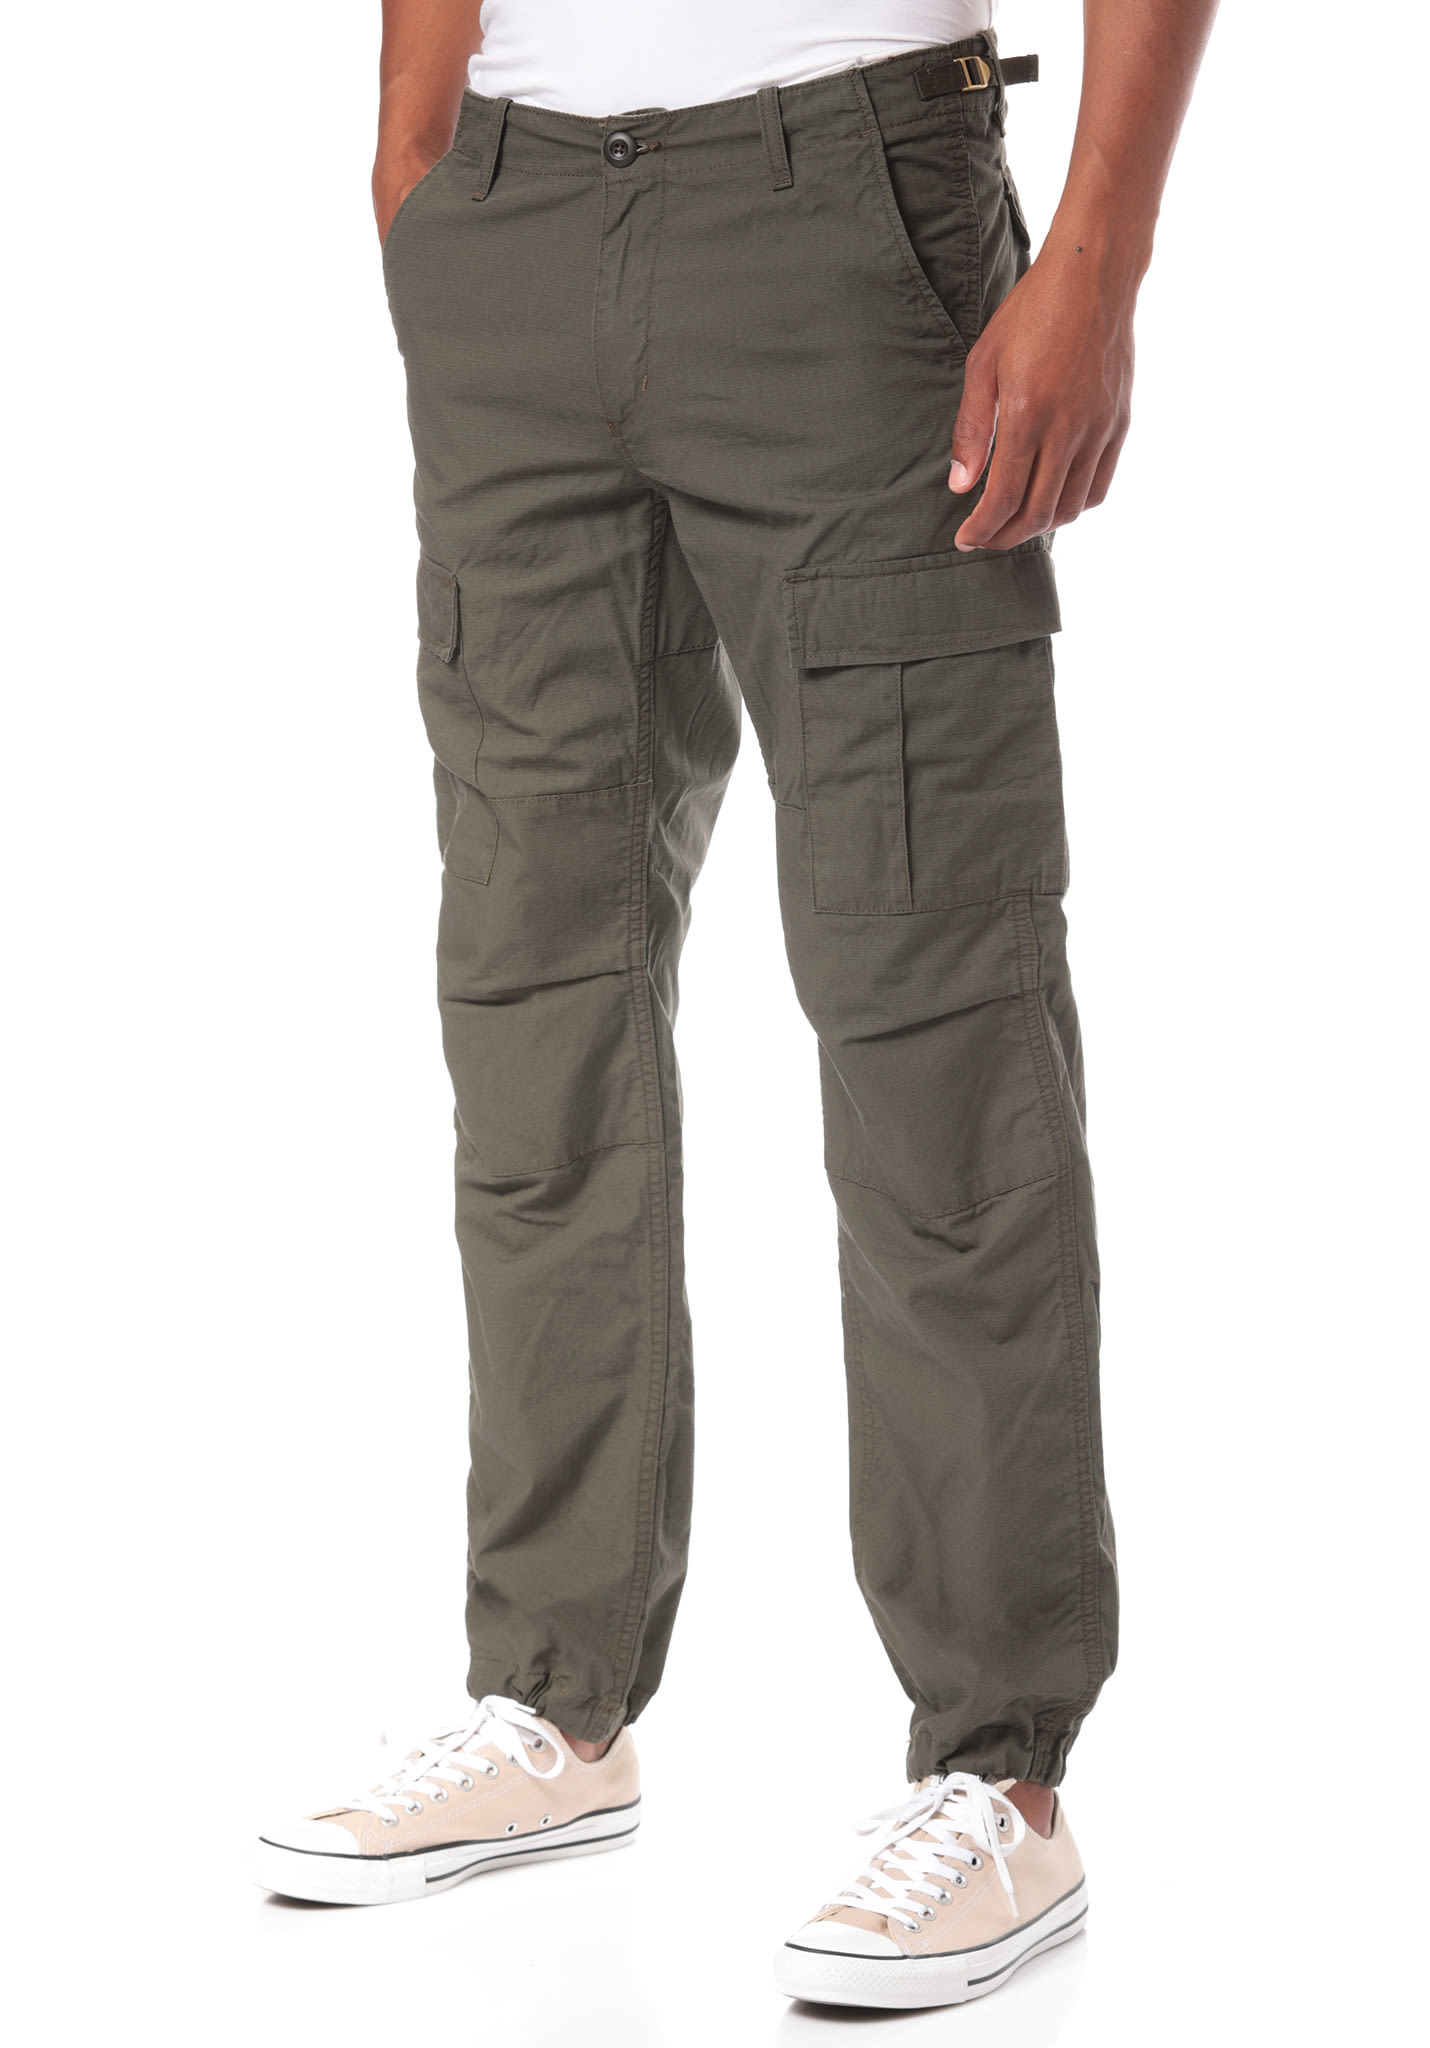 6b720417 carhartt WIP Aviation - Cargo Pants for Men - Green - Planet Sports